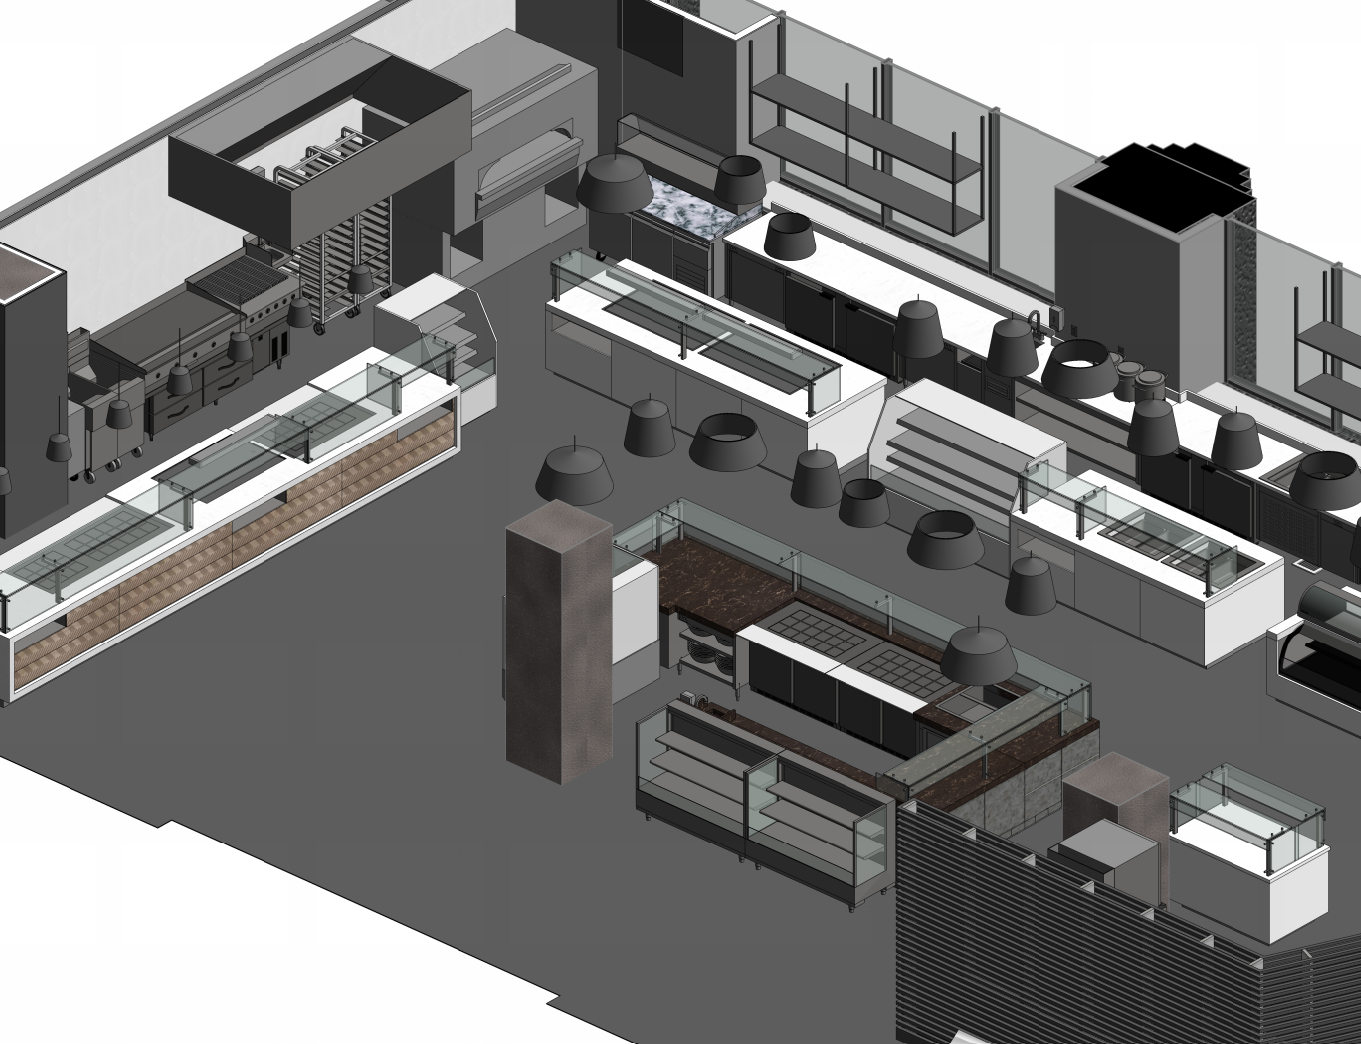 Revit_Foodservice_Design